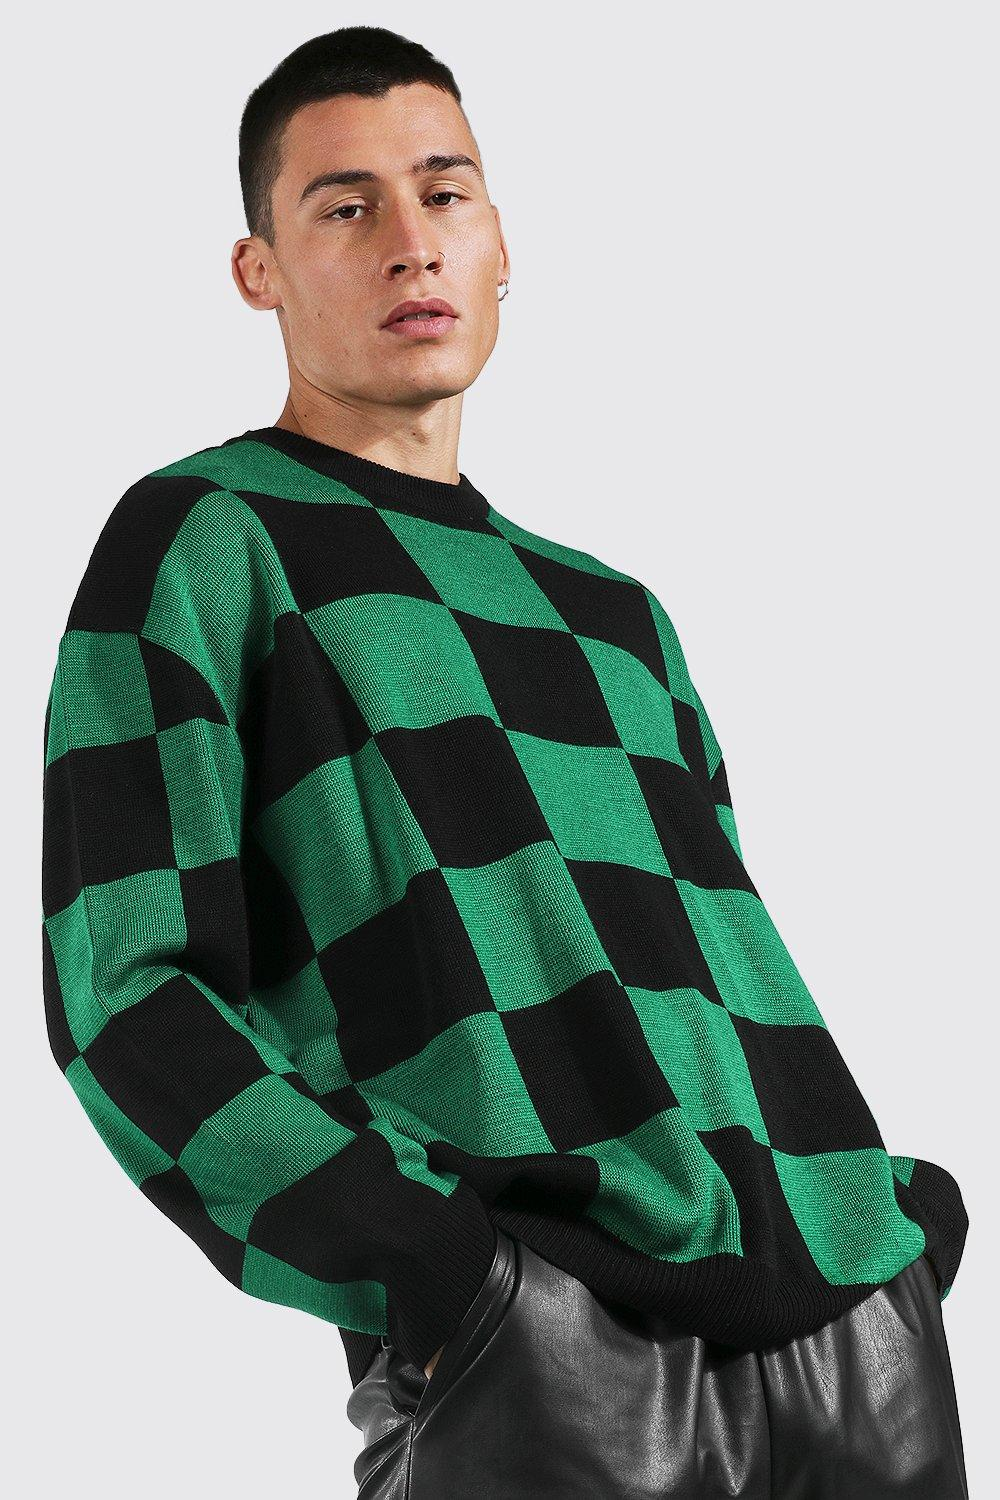 Men's Vintage Sweaters, Retro Jumpers 1920s to 1980s Mens Oversized Crew Neck Flannelerboard Sweater - Green $19.20 AT vintagedancer.com